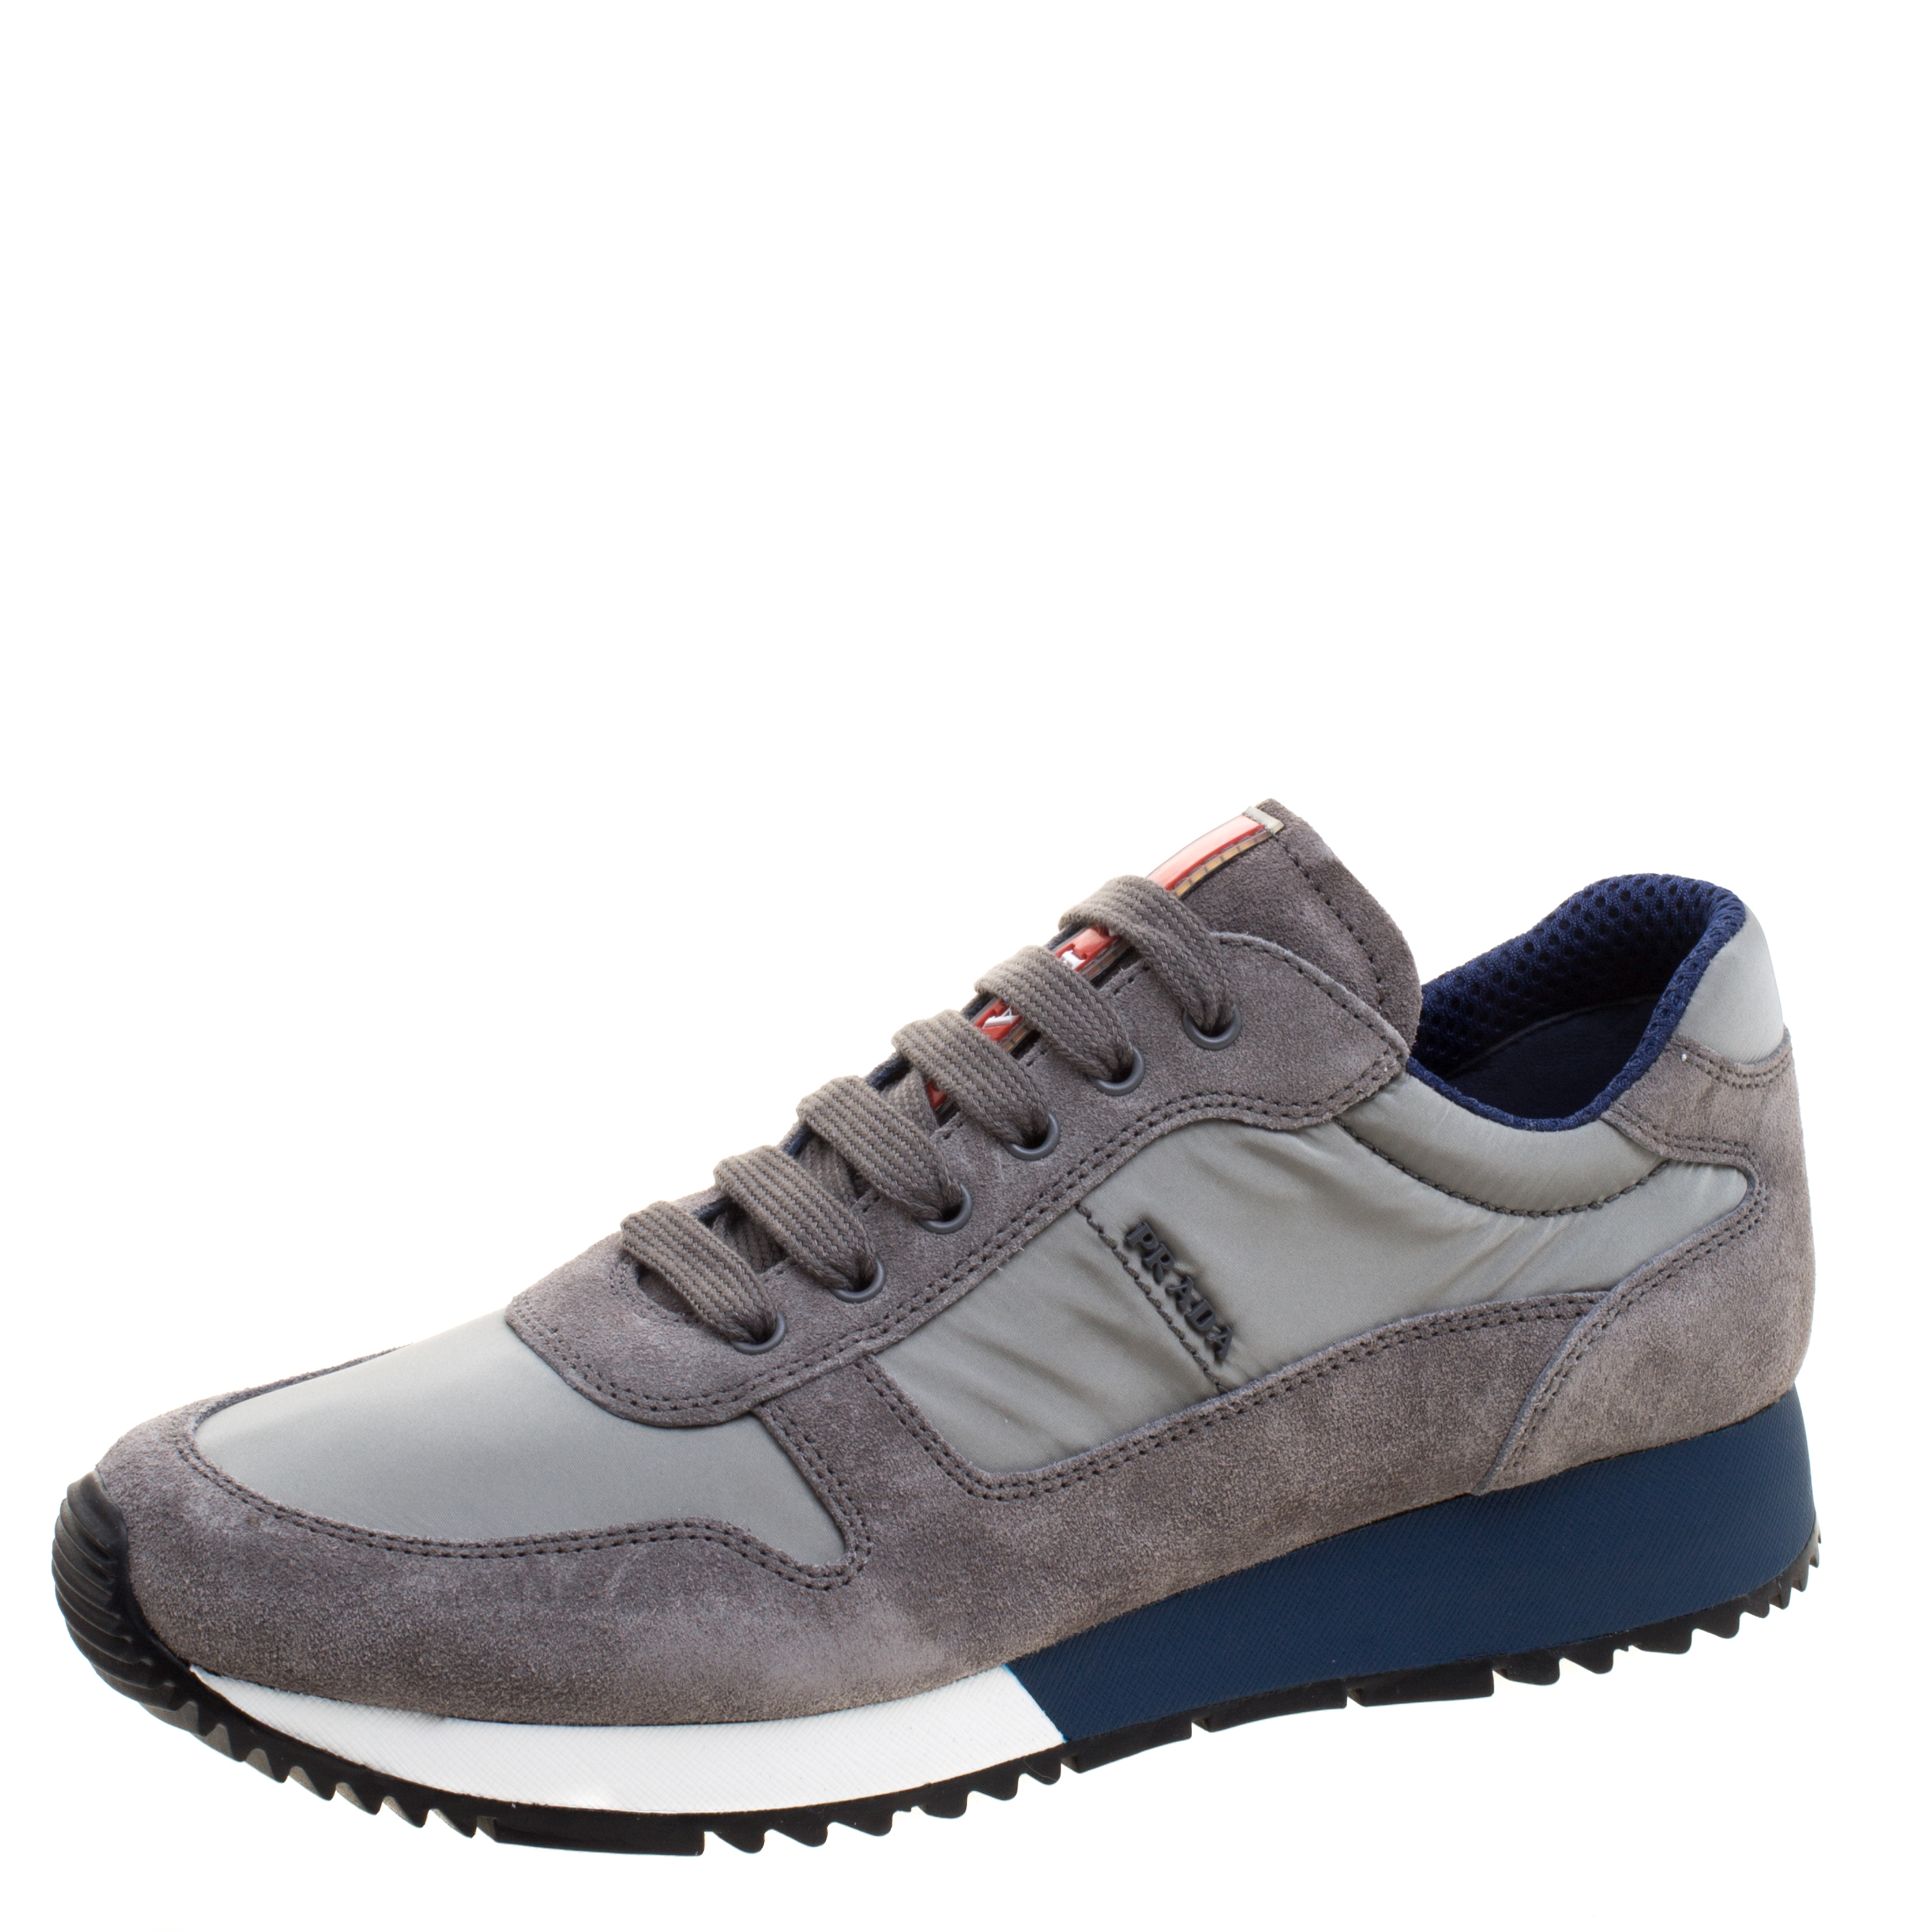 d84b85545105 Buy Prada Sport Grey Suede And Nylon Lace Up Sneakers Size 38 117970 ...